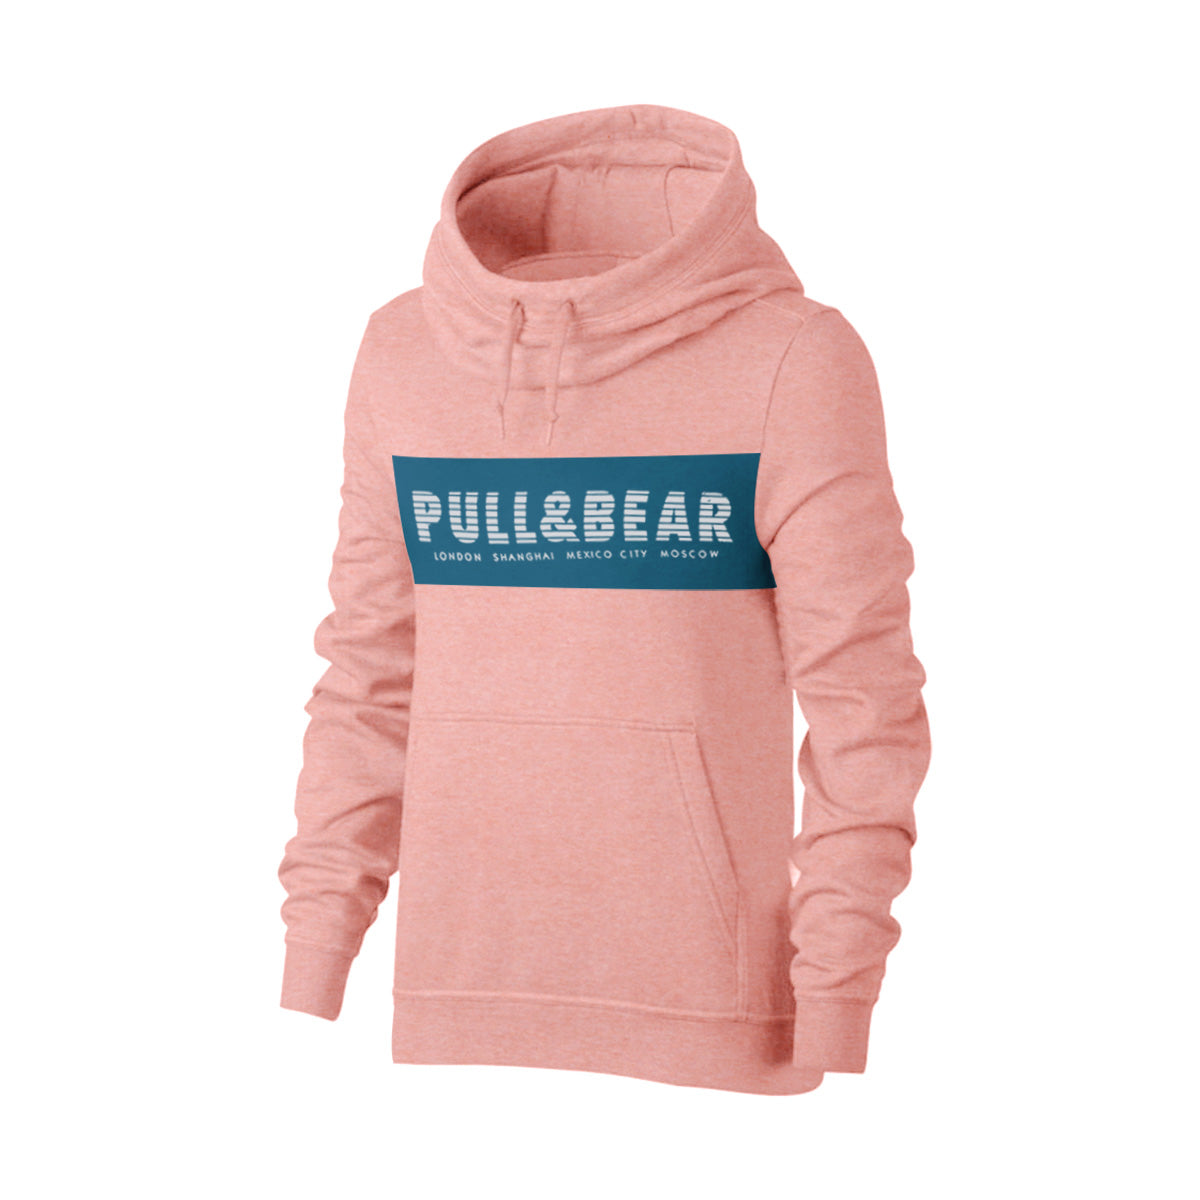 Pull & Bear Fleece Pullover Hoodie For Men-Pink Melange With Navy Panel-BE13429